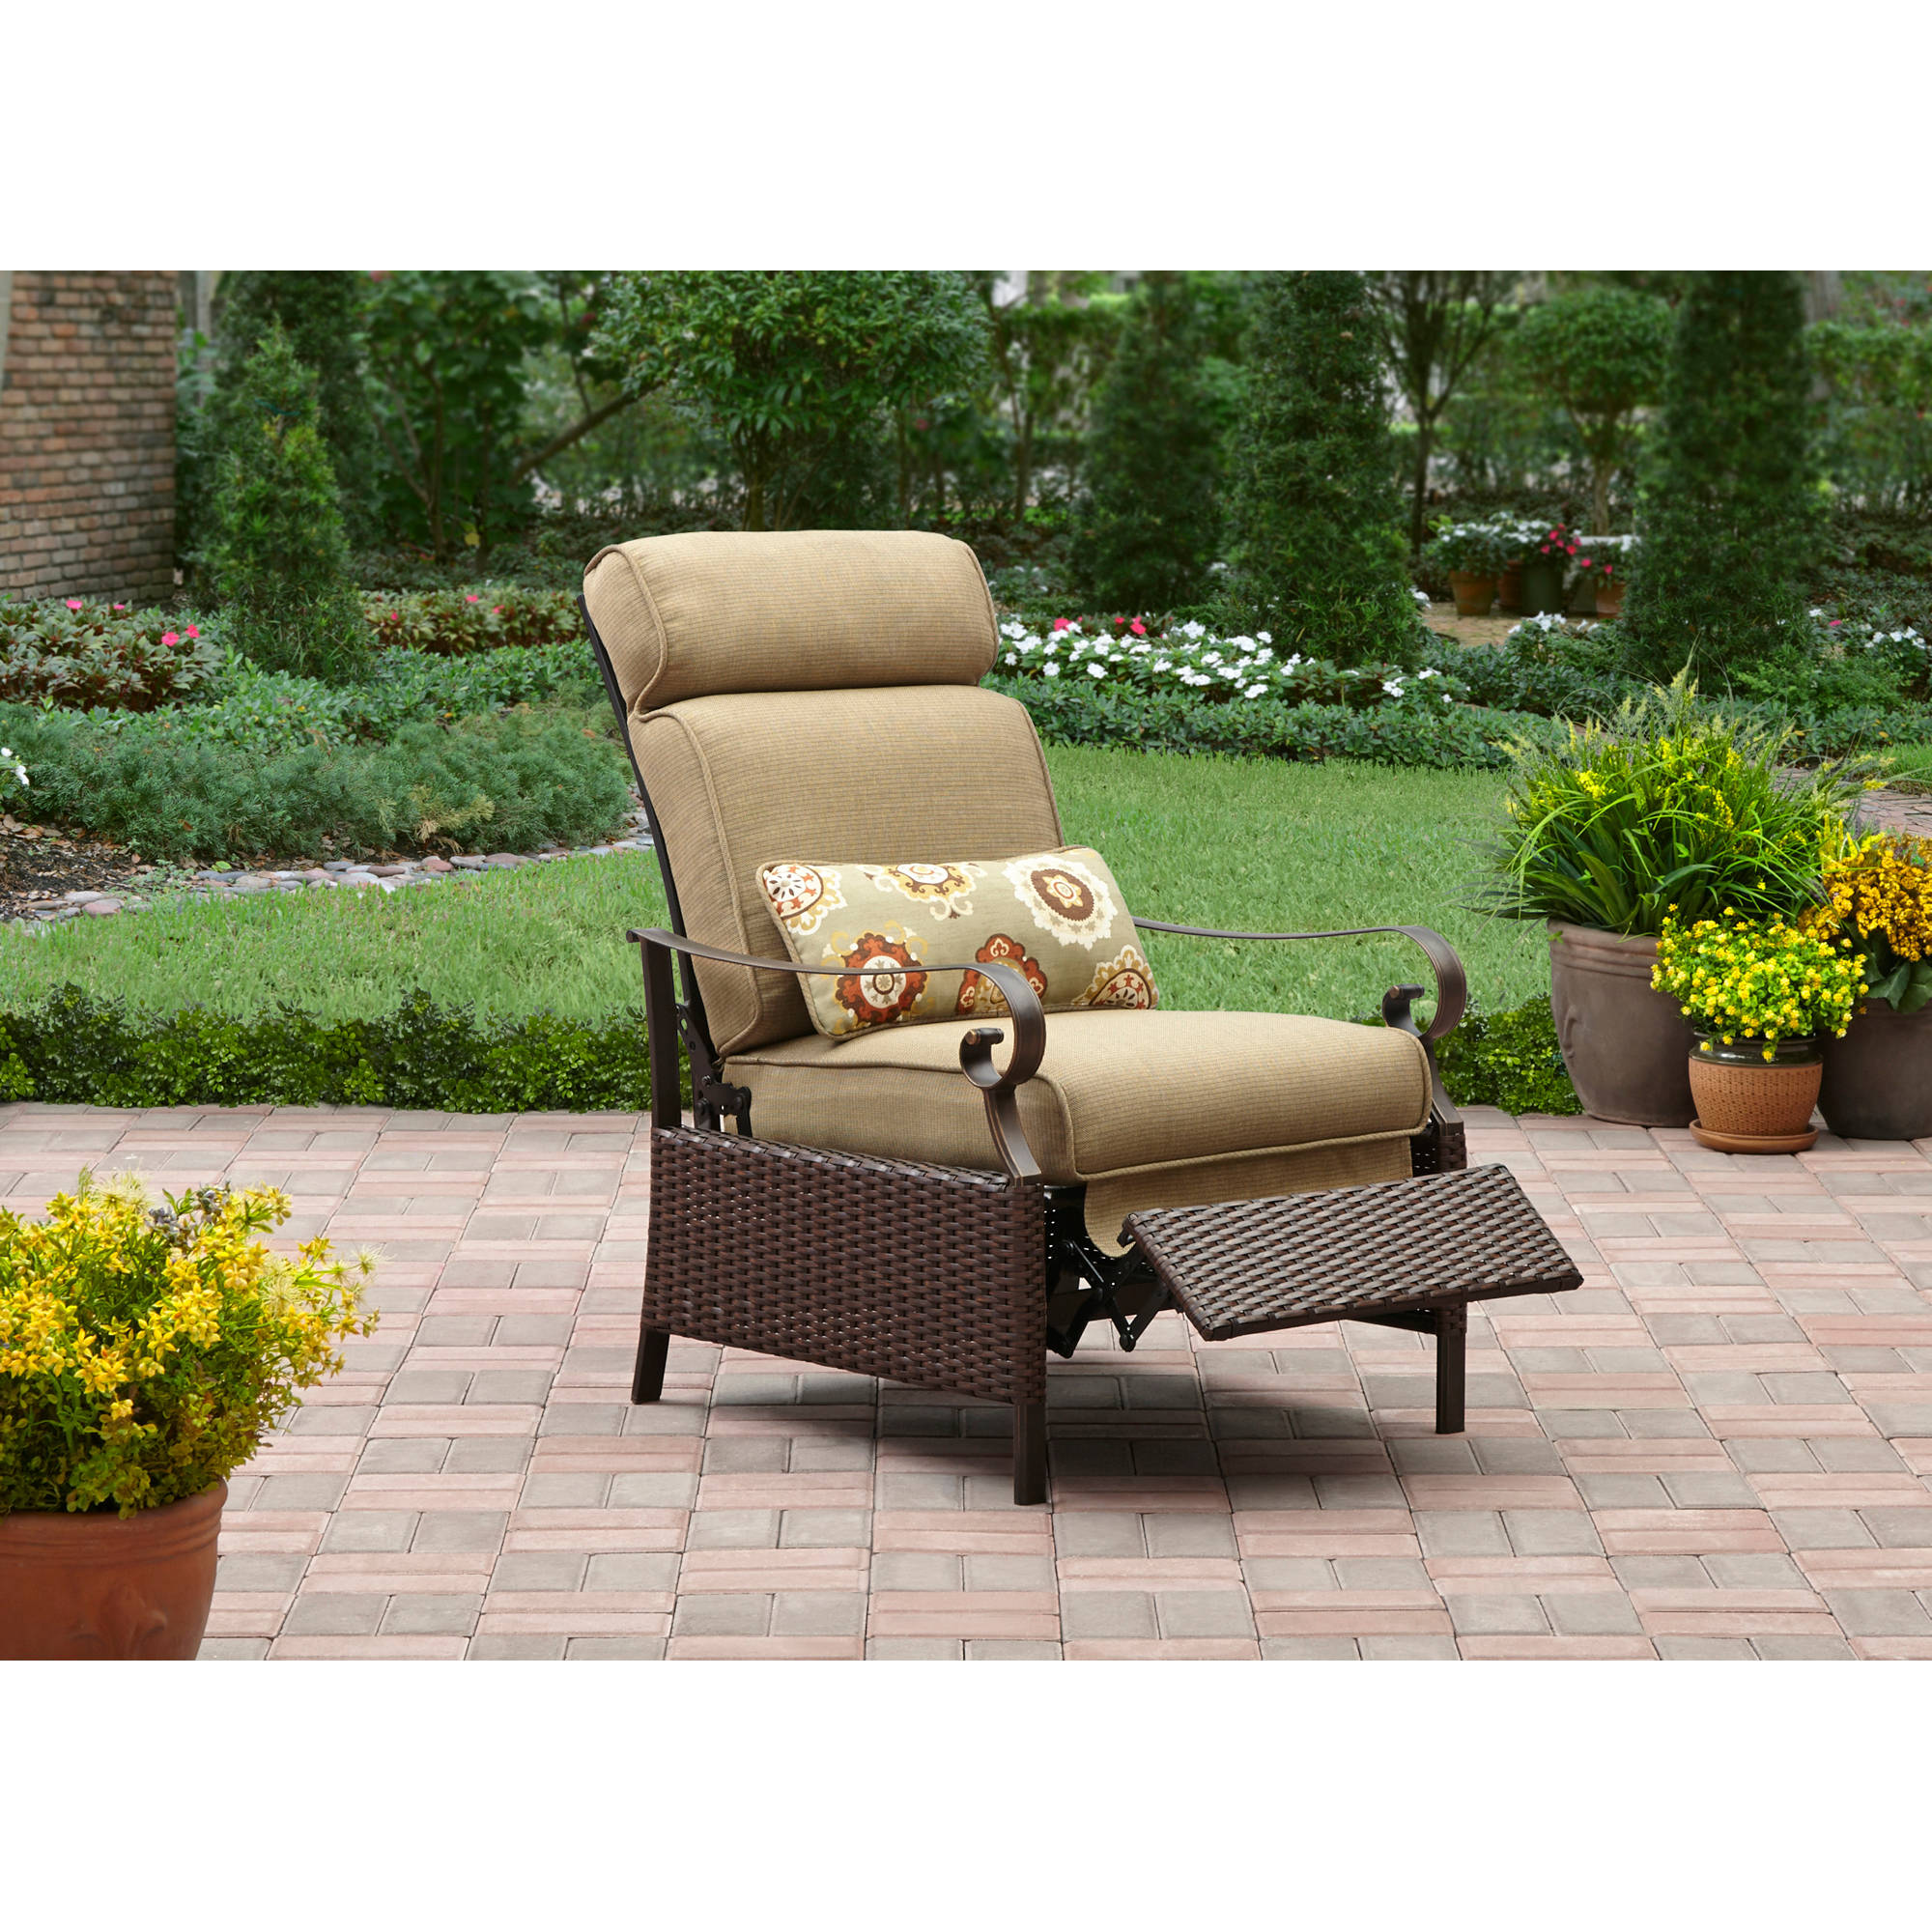 Better Homes and Gardens Riverwood Recliner, Tan